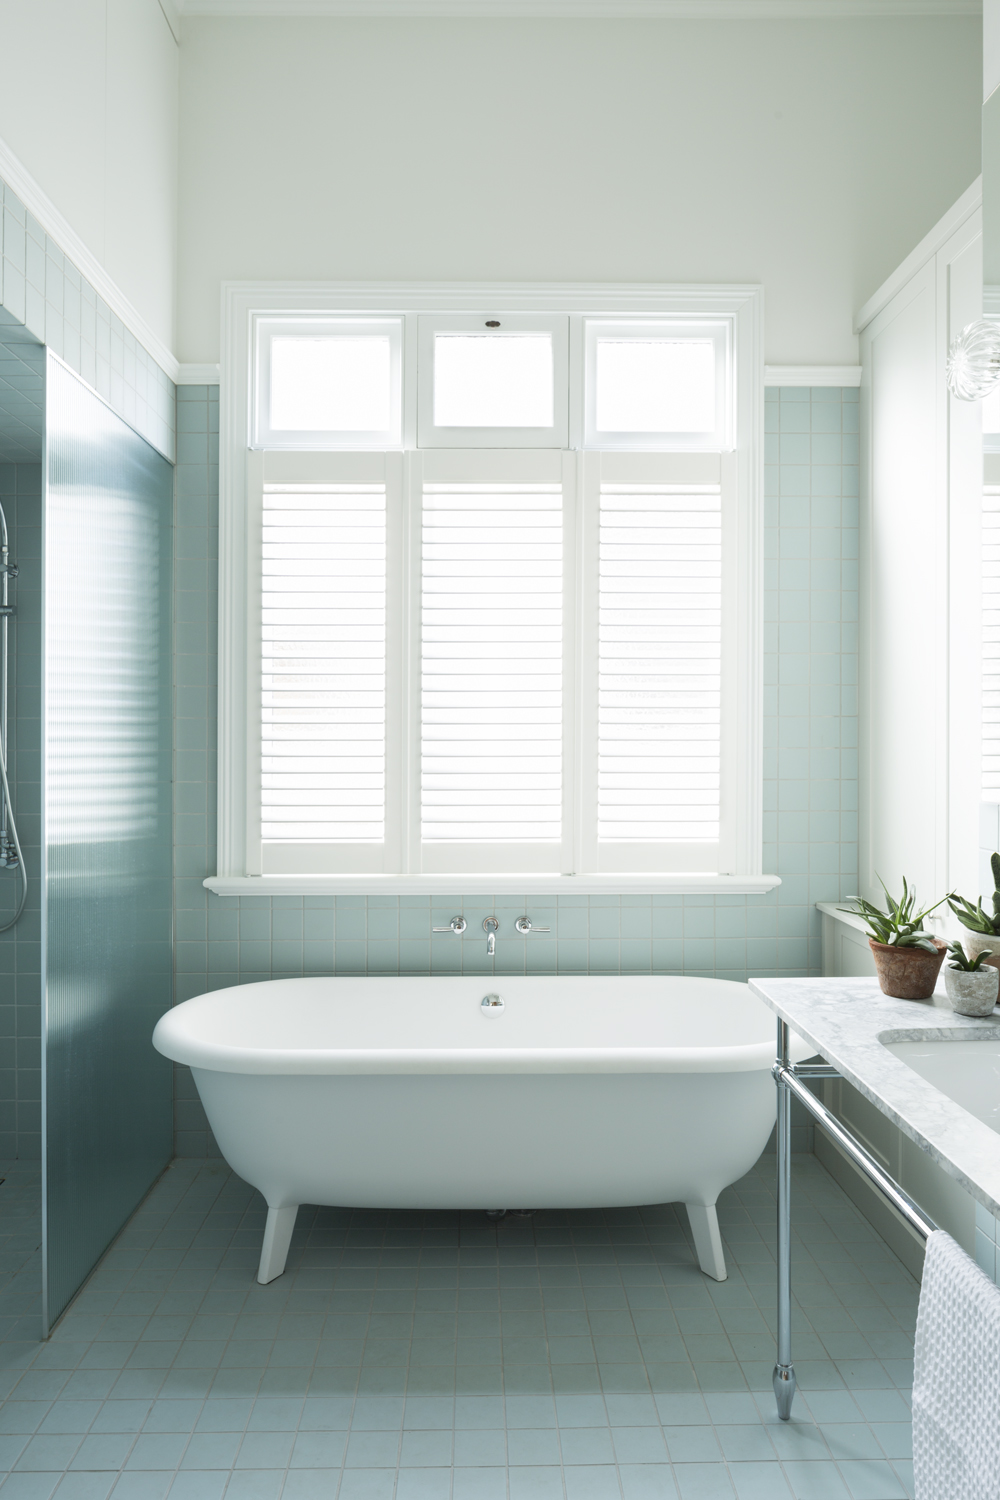 Clifton Hill bathroom design by Melbourne interior designer Meredith Lee